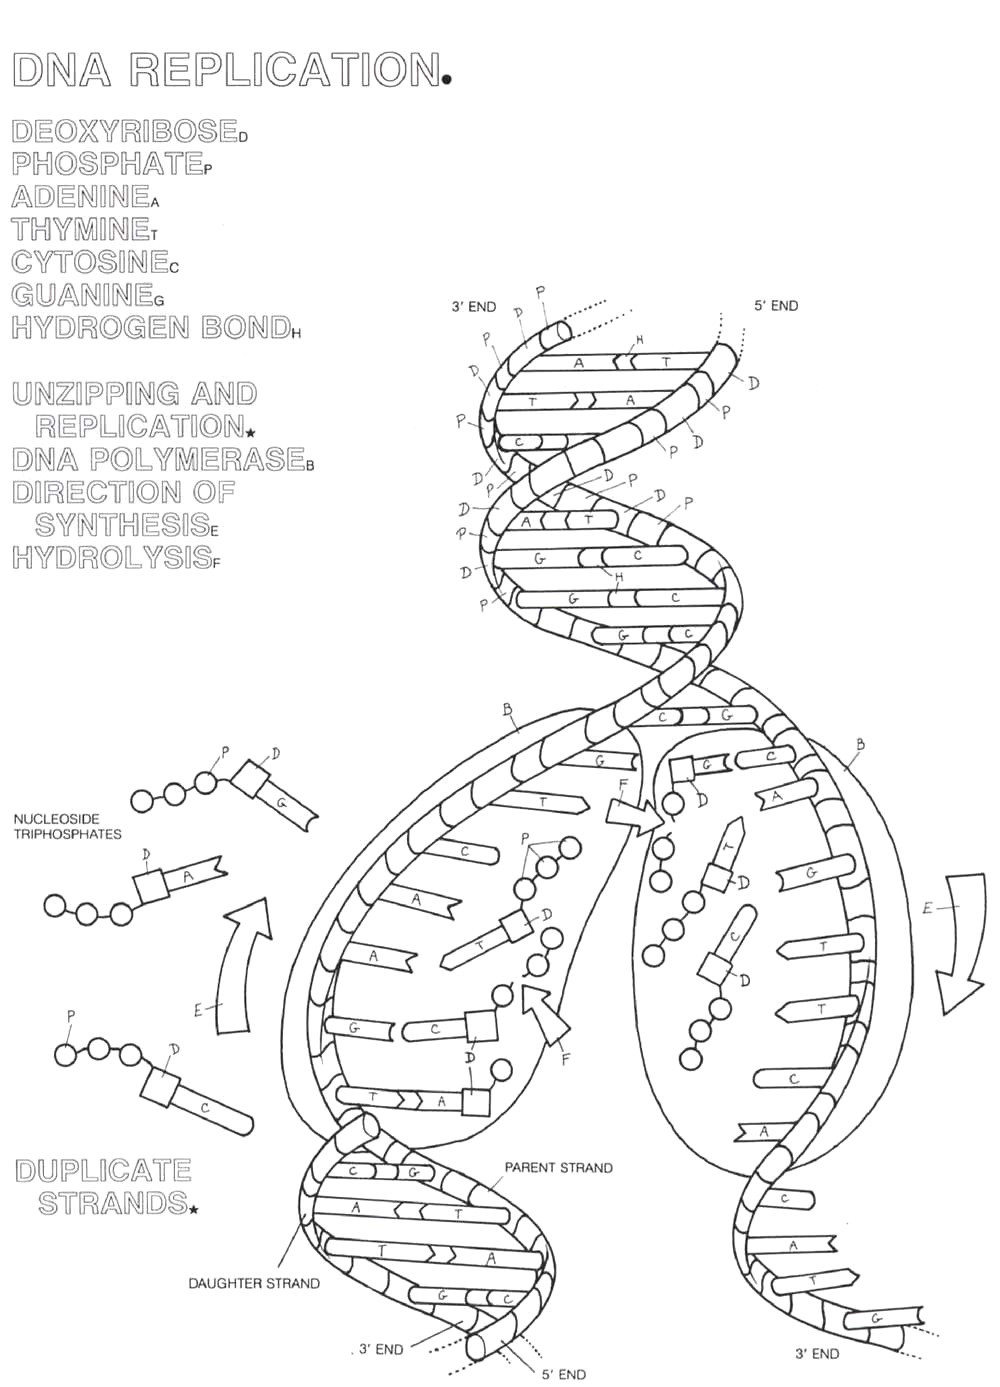 Dna Structure Worksheet High School 33 Structure Dna and Replication Worksheet Answers